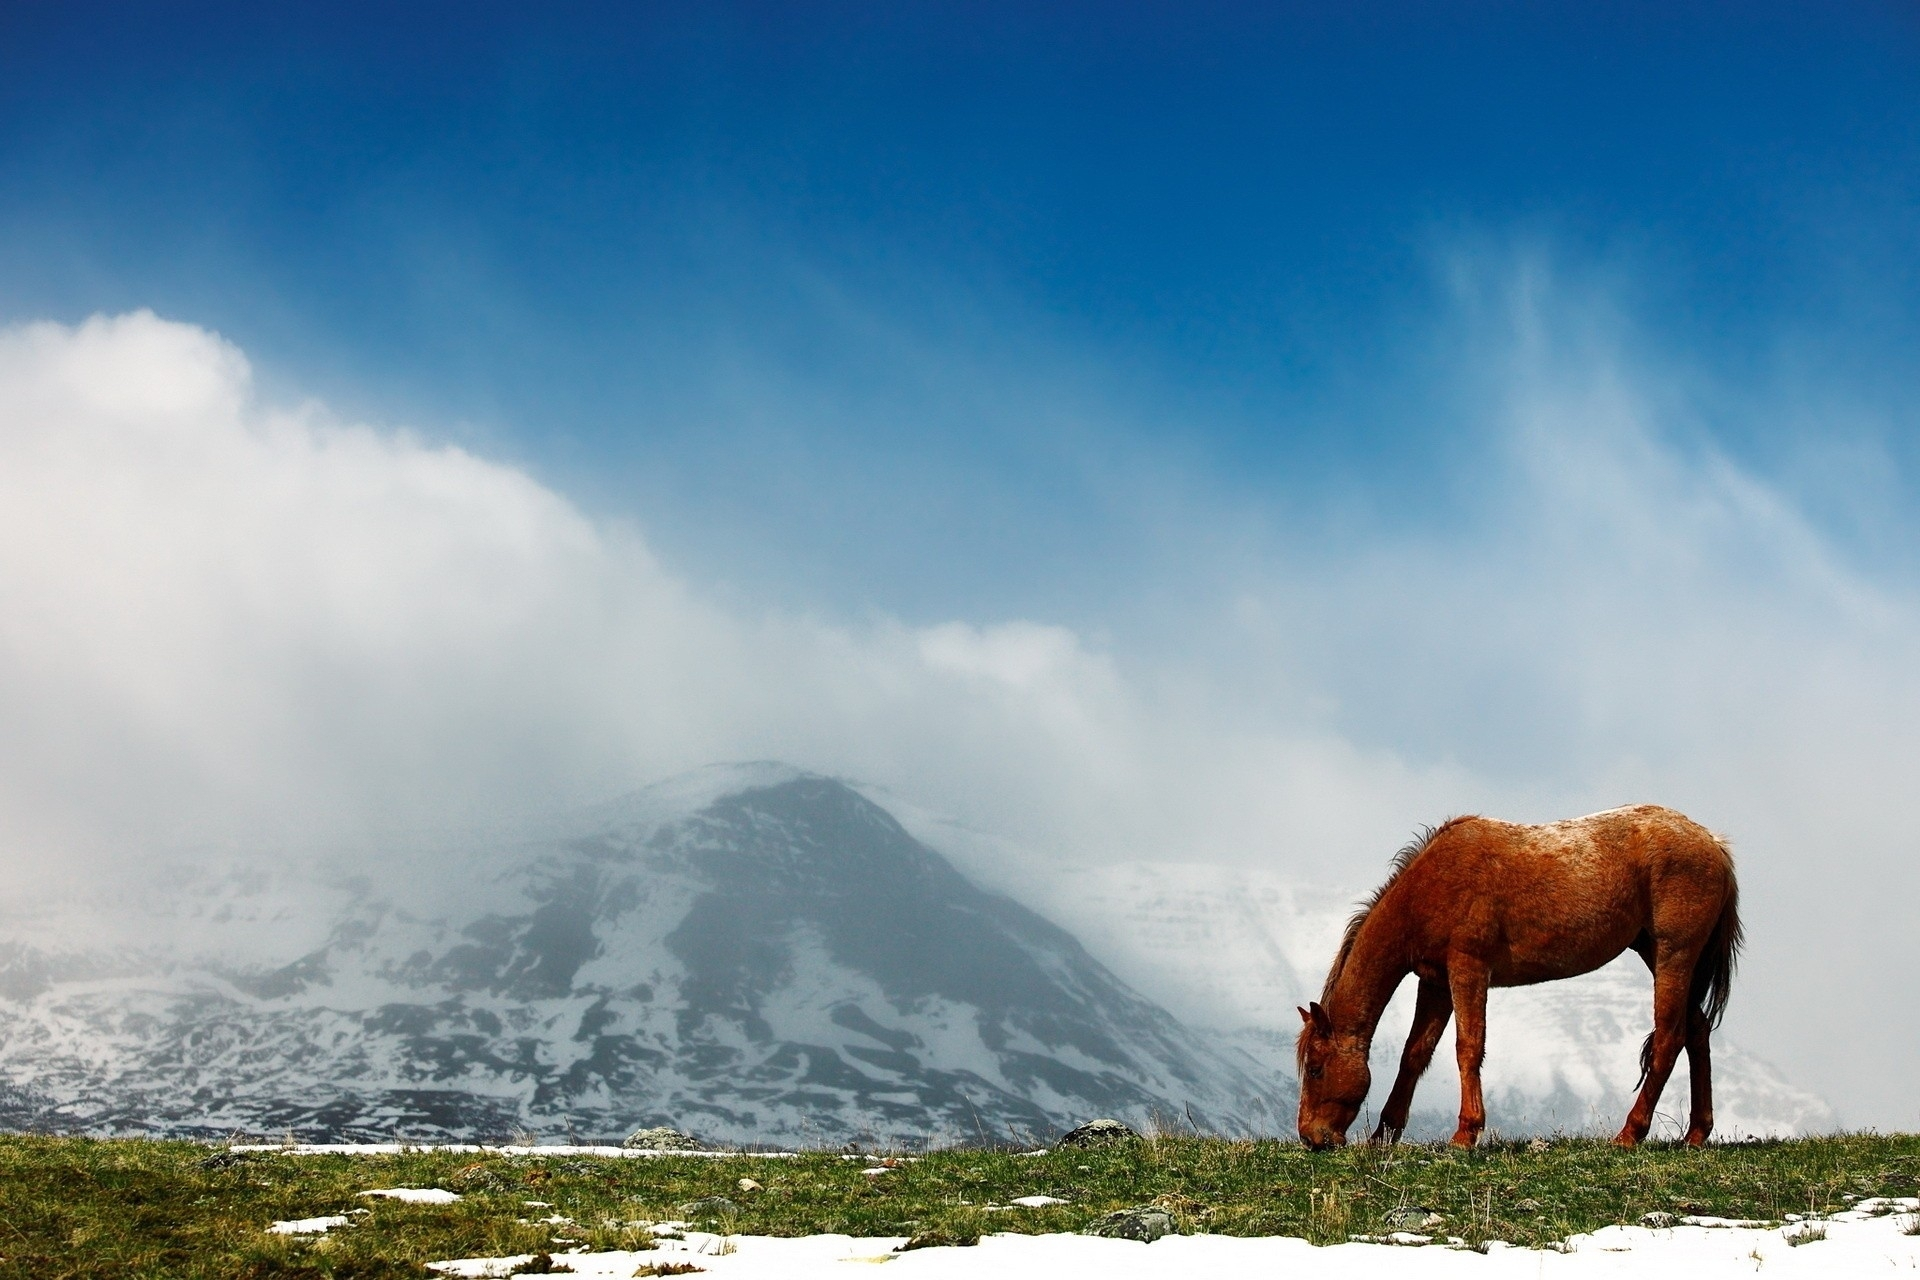 Image: Horse, field, grass, snow, sky, mountain, clouds, fog